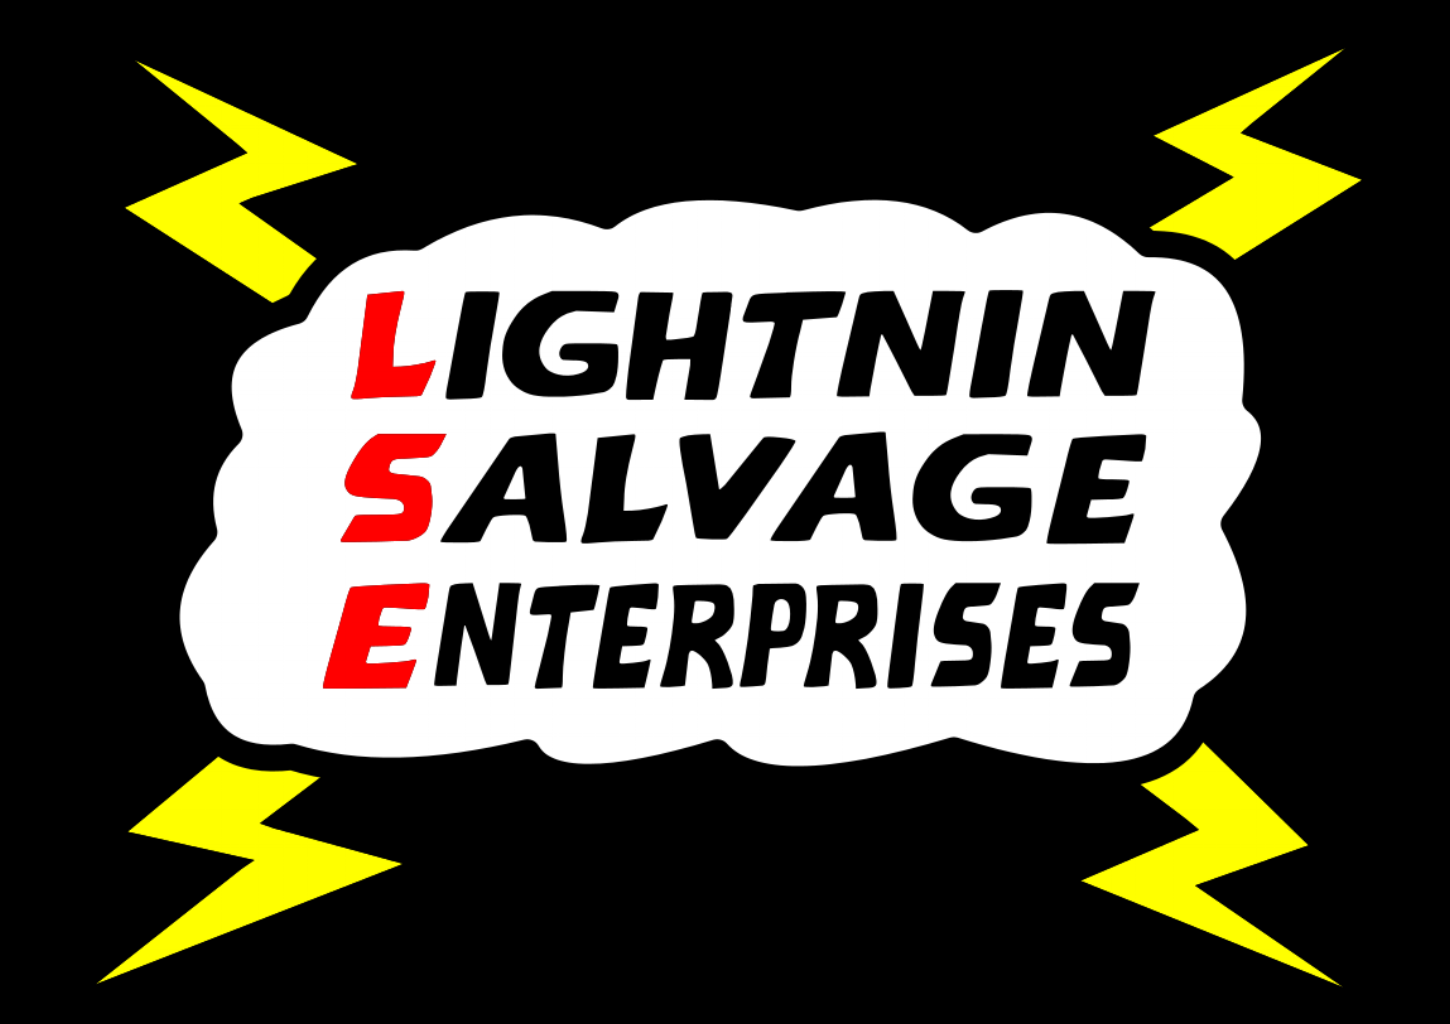 Lightnin Salvage Enterprises